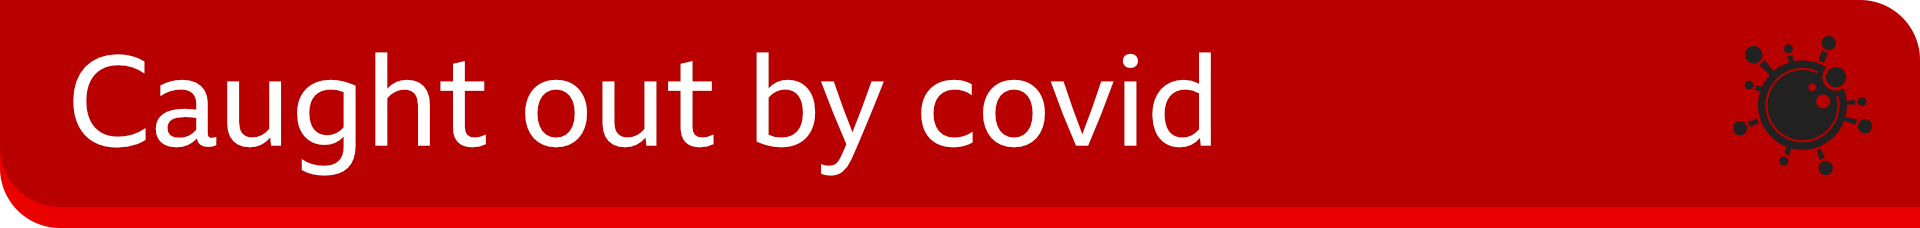 Caught out by covid banner graphic